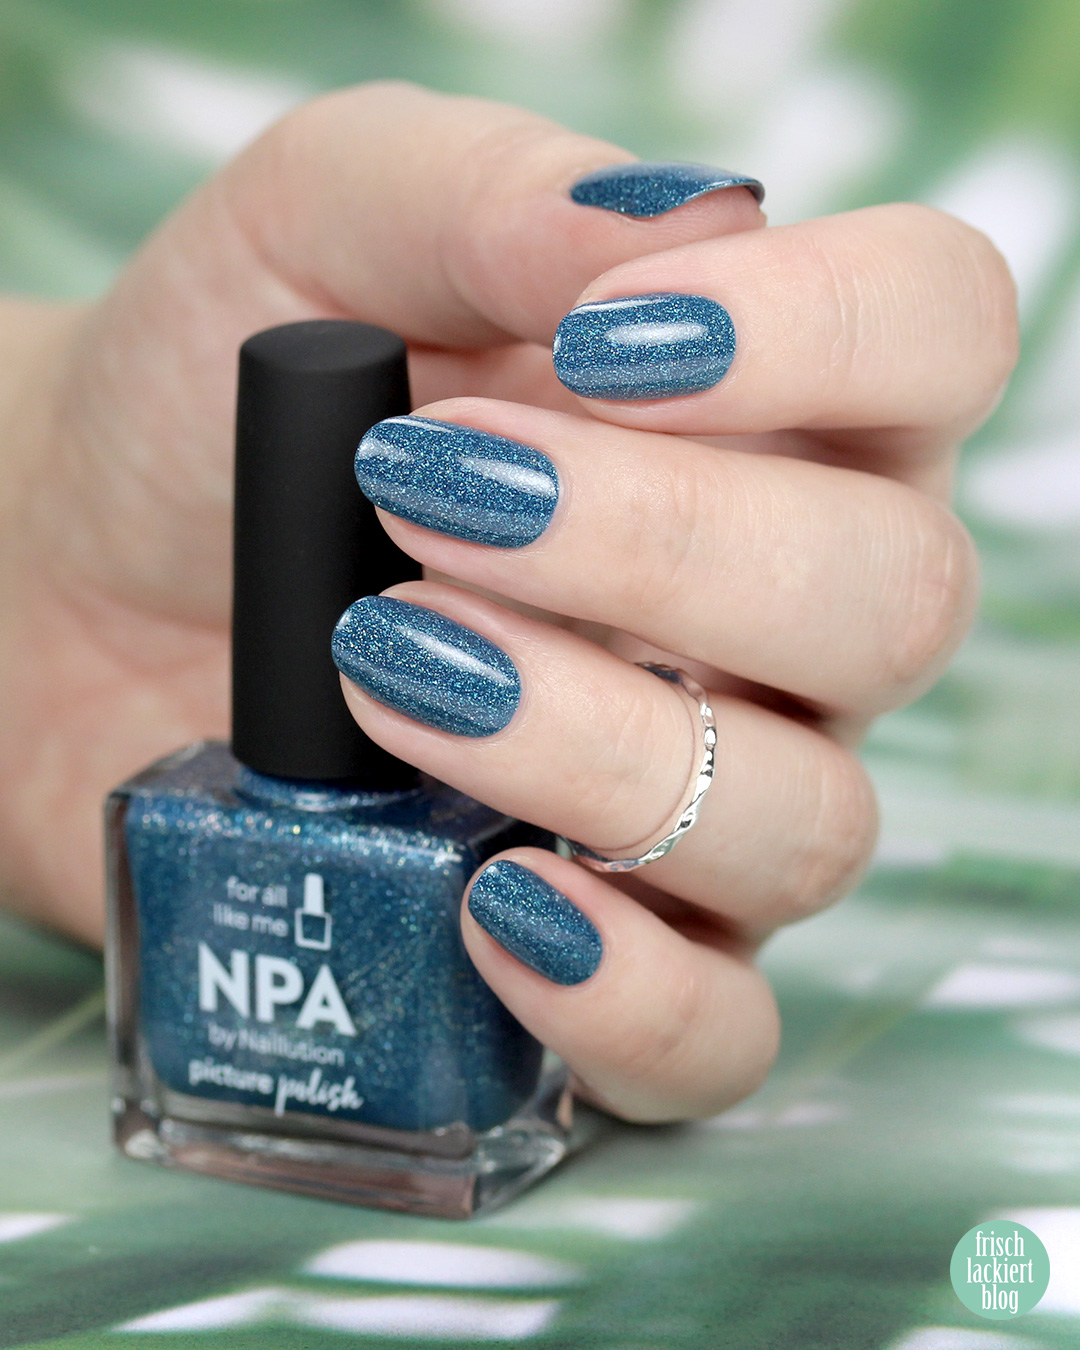 Picture Polish NPA – Nail Polish Swatch by frischlackiert